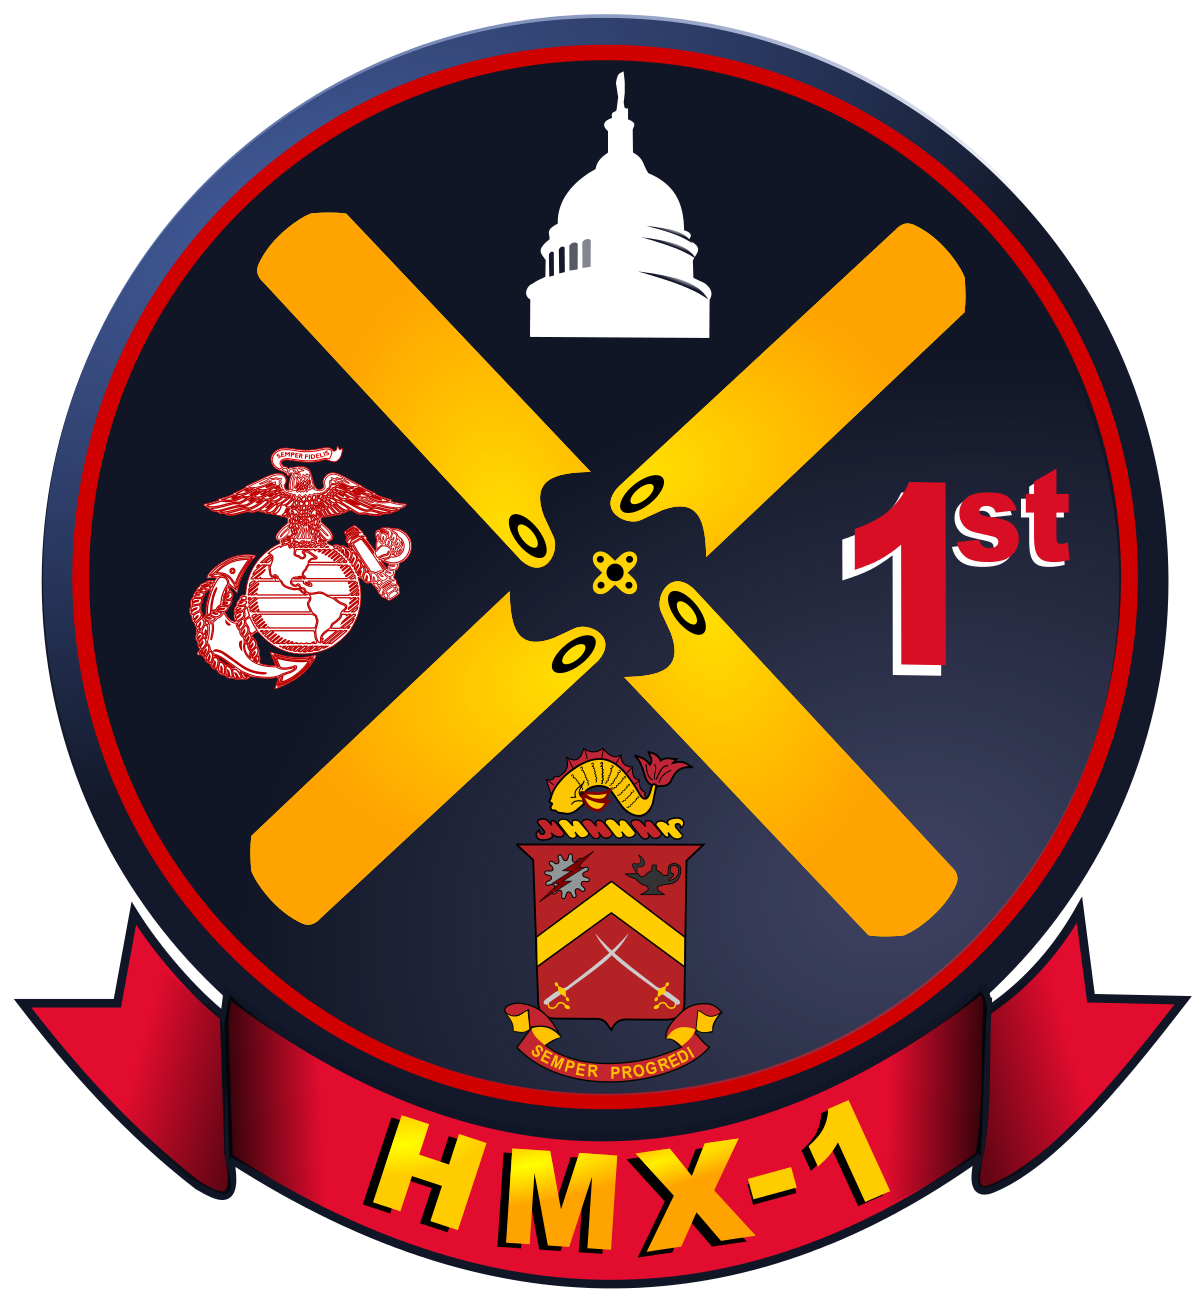 Usmc svg dog. Hmx wikipedia